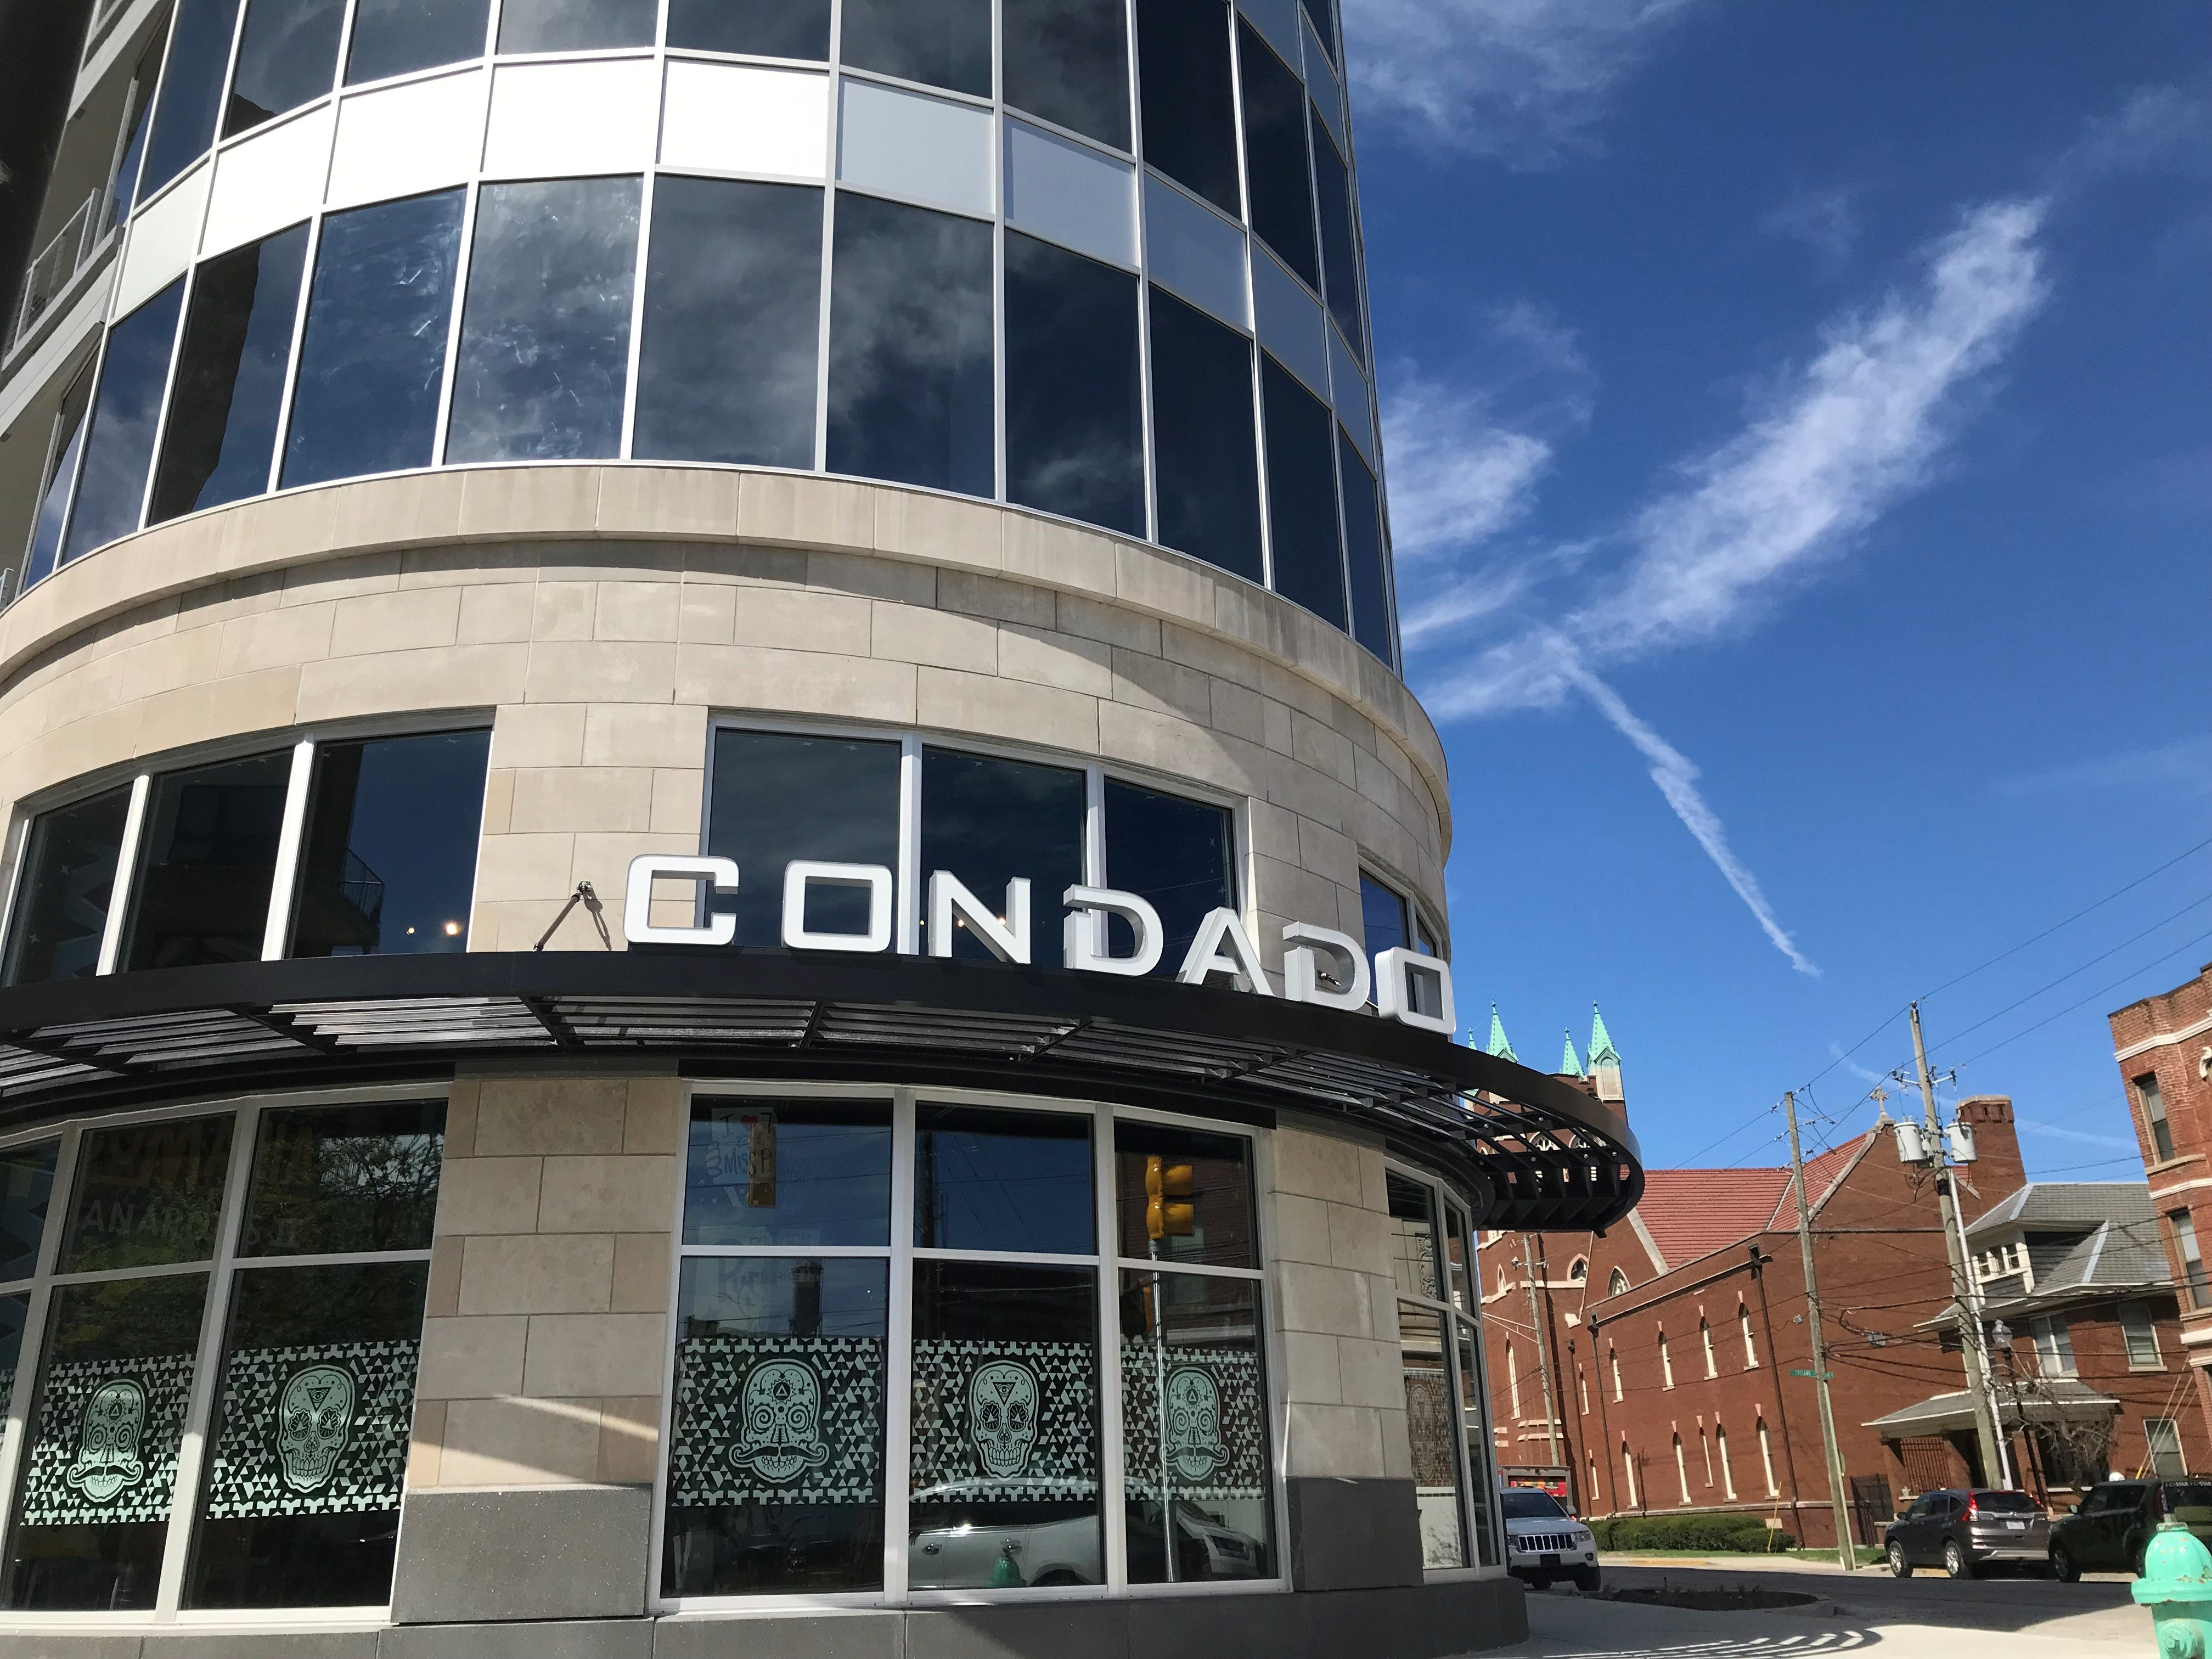 A huge taco restaurant is open on Mass Ave. this week